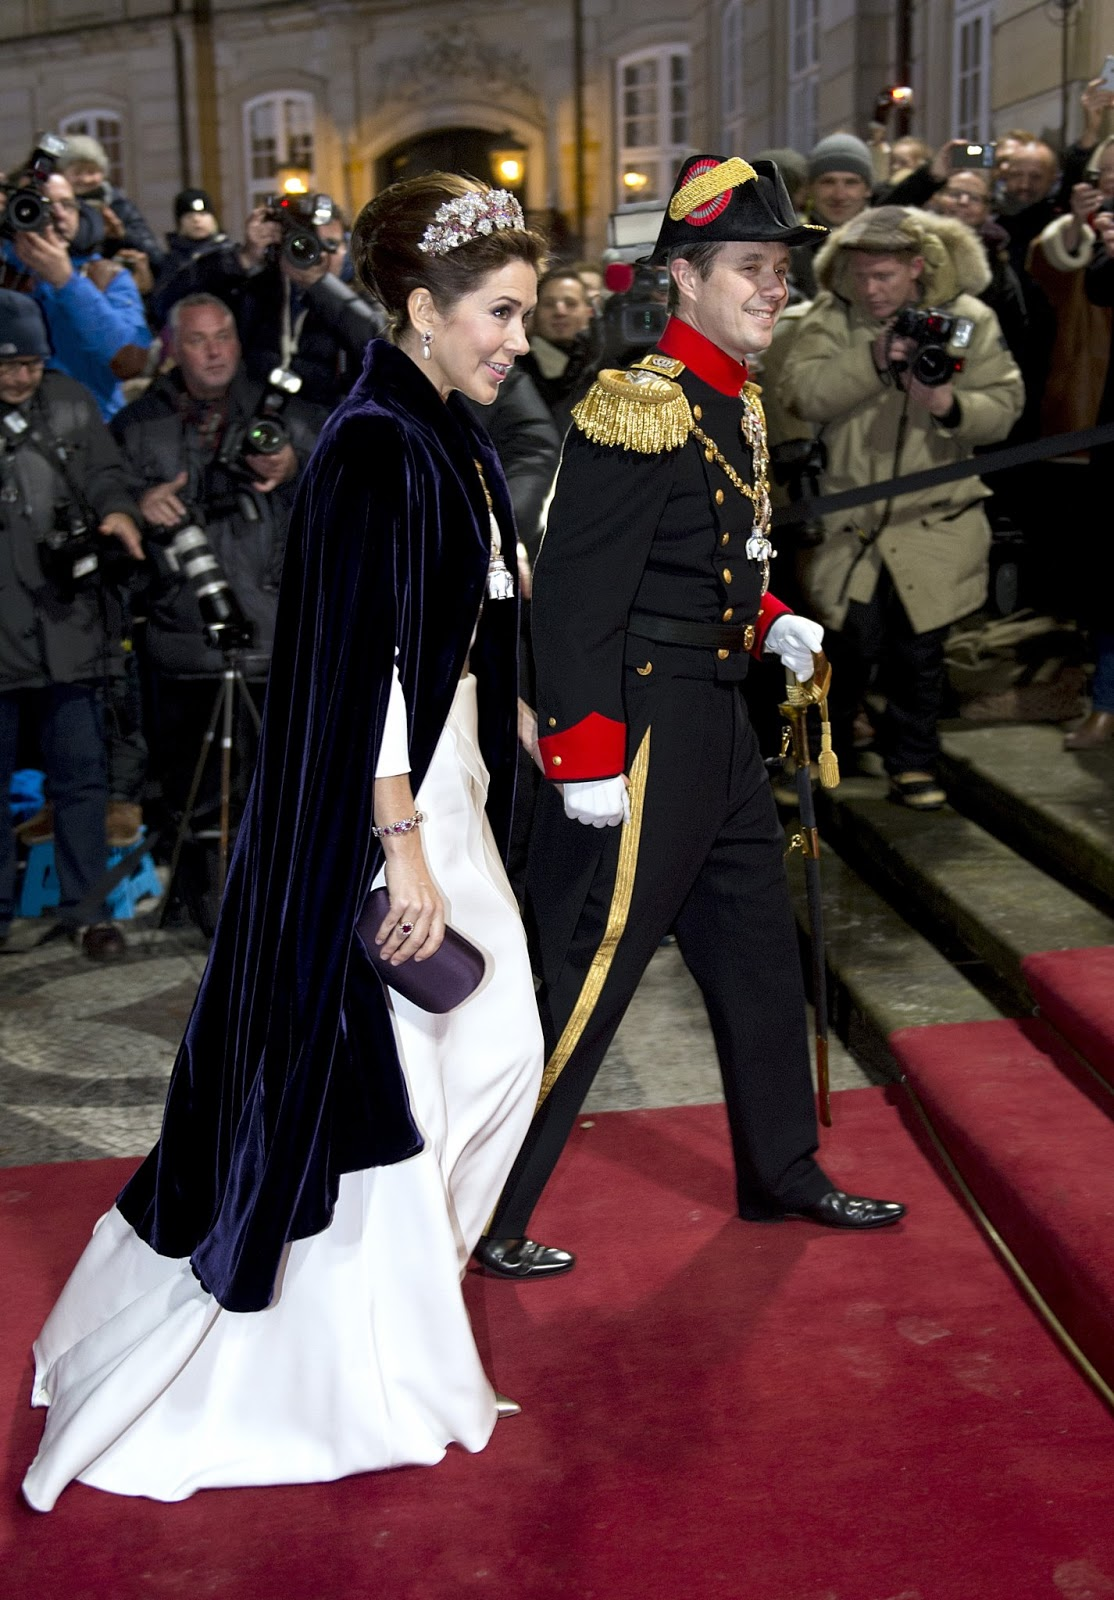 Danish Royal Family on New Year's reception 2015